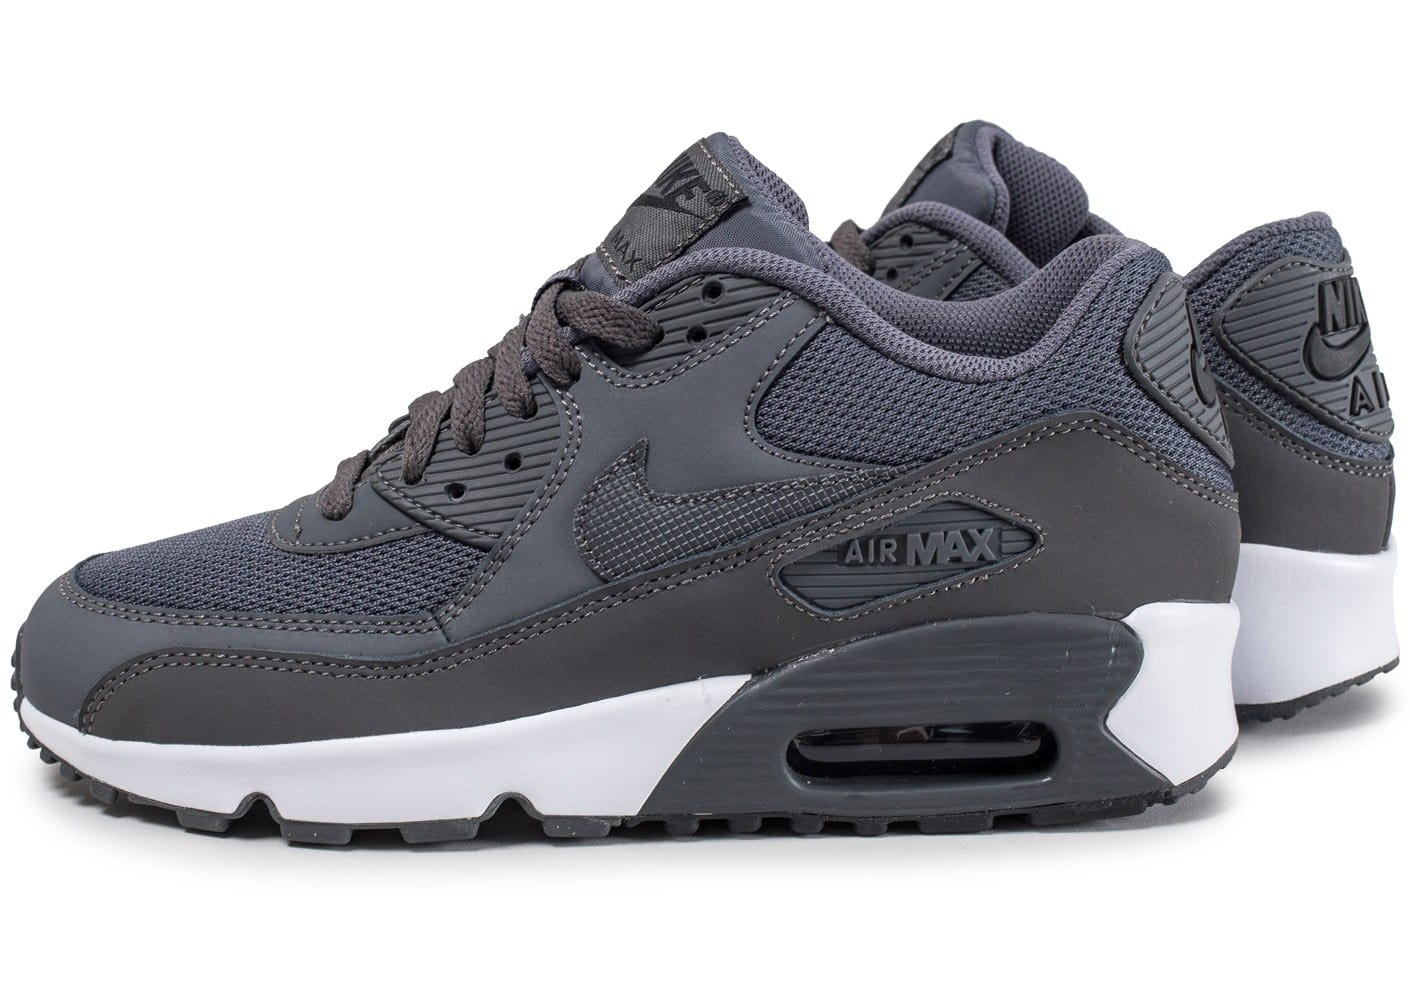 nike air max 90 mesh junior grise chaussures black friday chausport. Black Bedroom Furniture Sets. Home Design Ideas